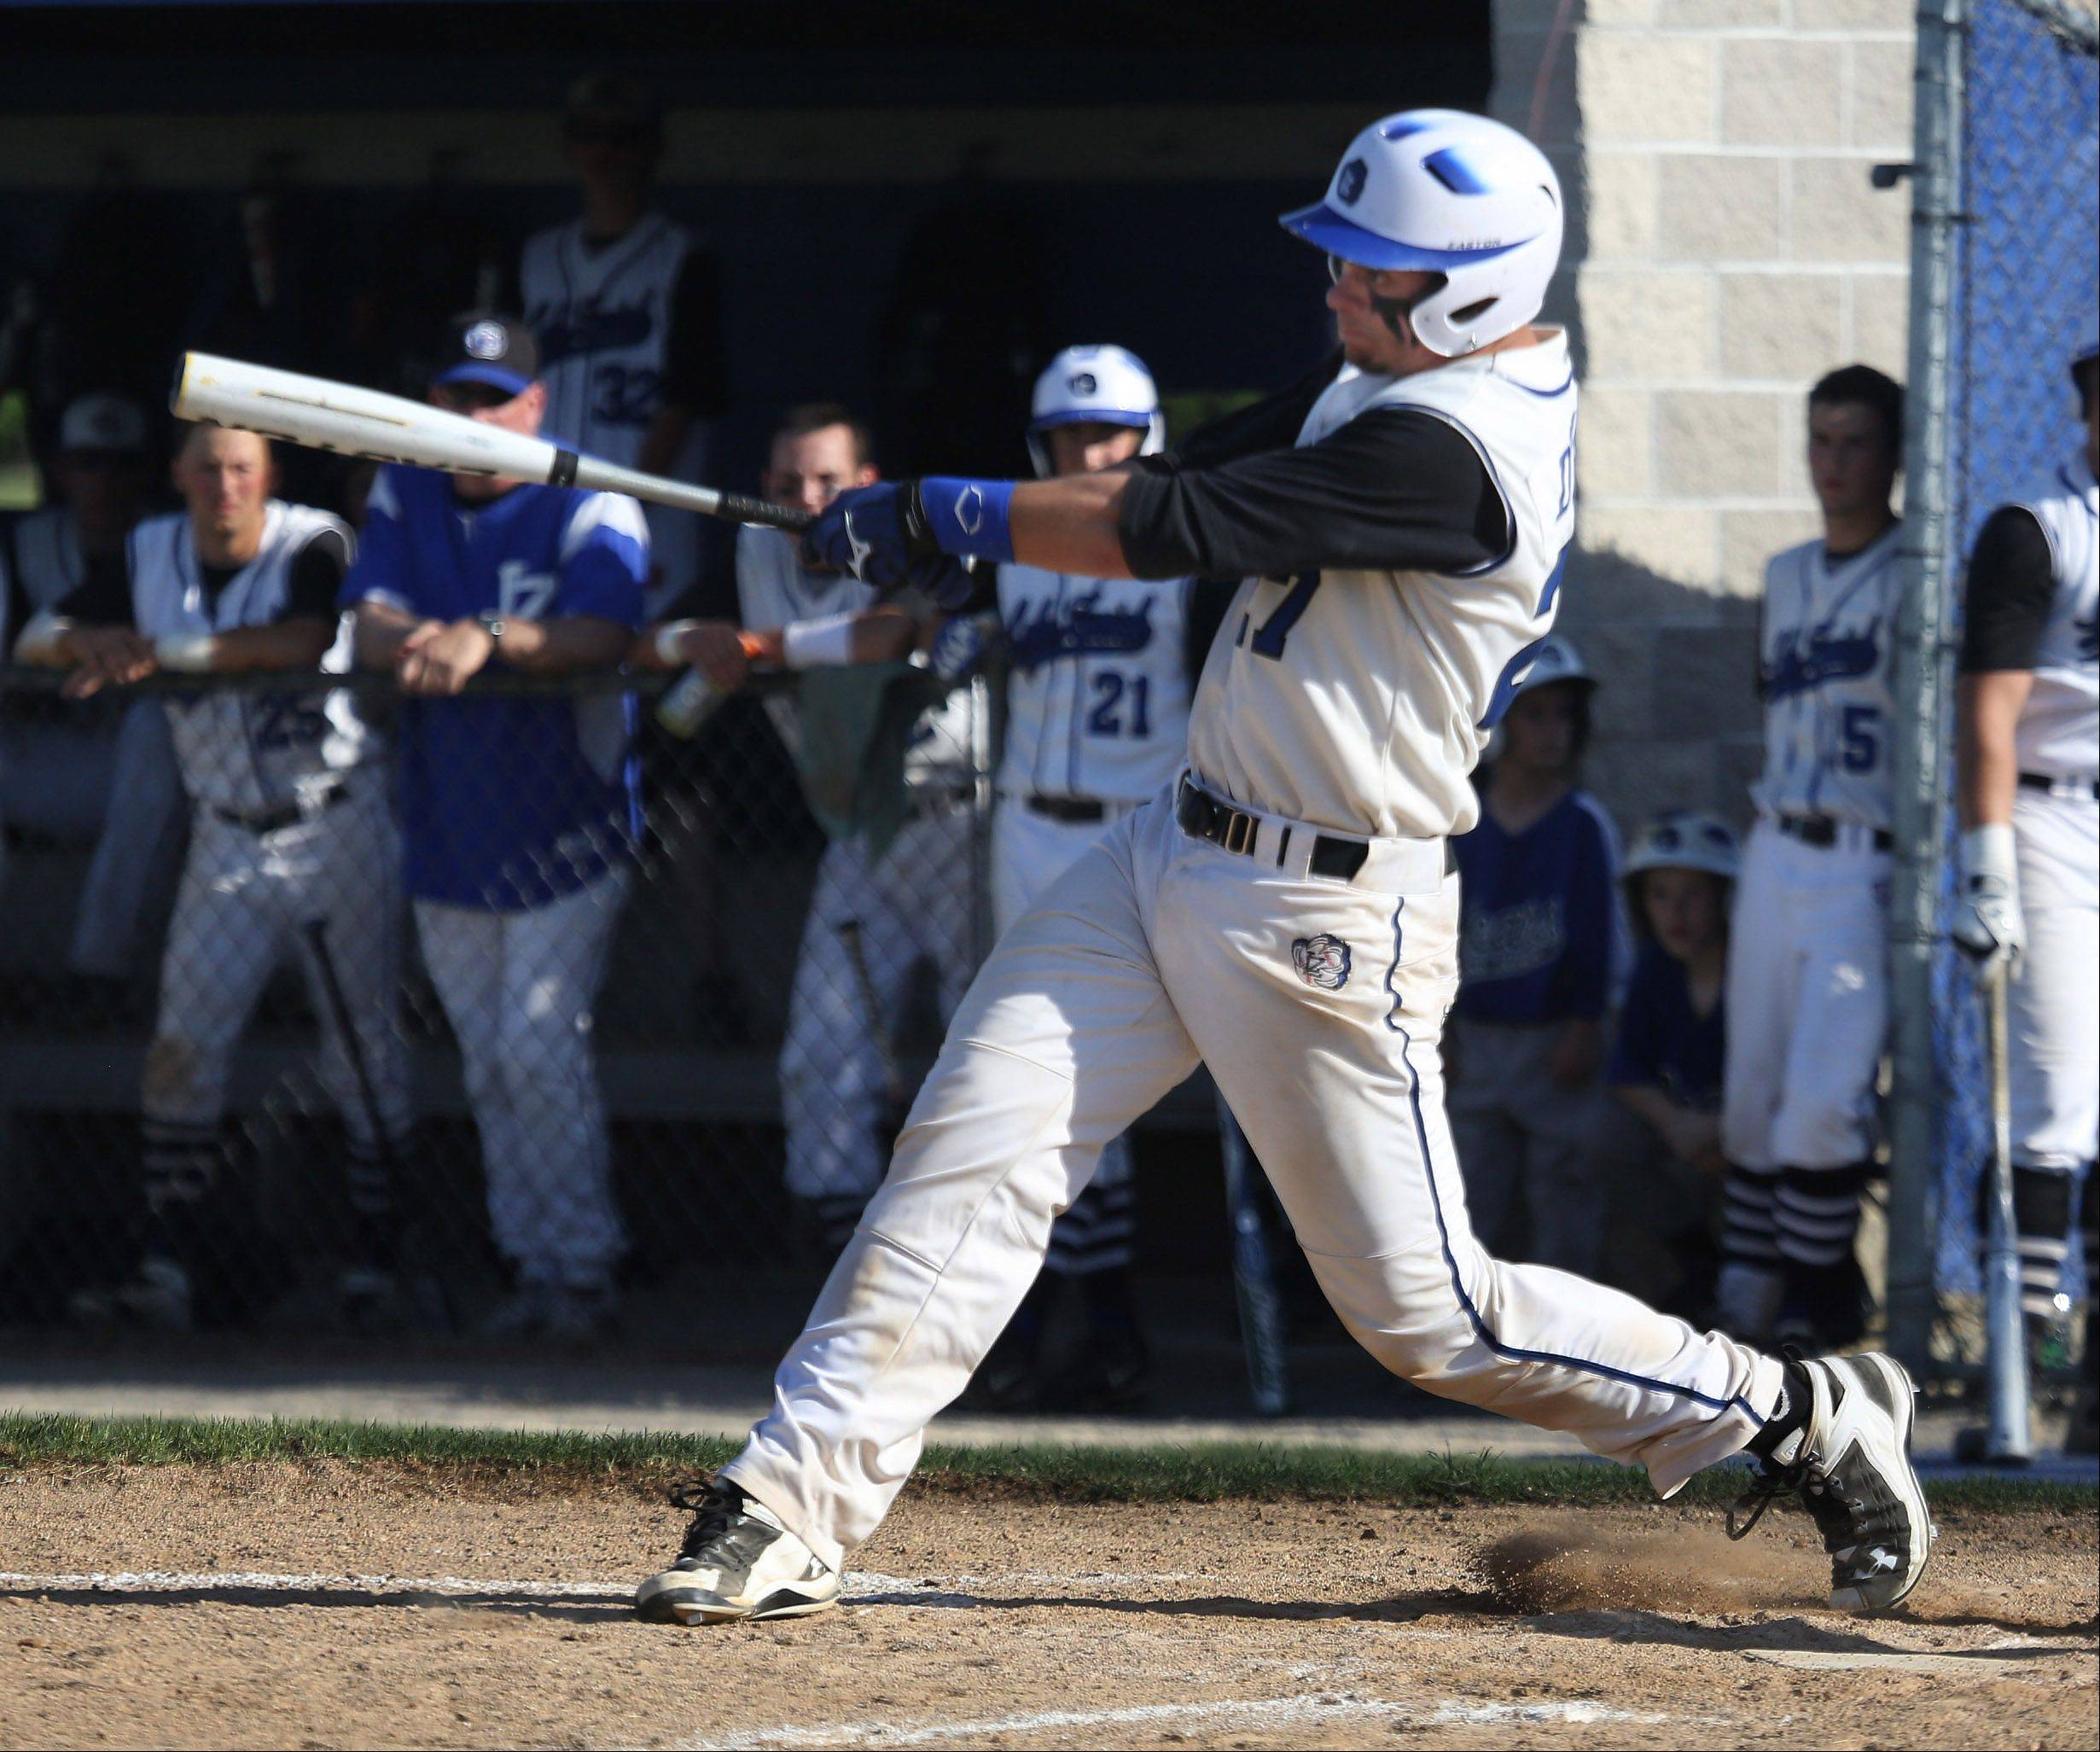 Gilbert R. Boucher II/gboucher@dailyherald.com � Lake Zurich hitter Anthony Drago gets a hit during the Class 4A regional play-in baseball game between Prospect and Lake Zurich Monday at Lake Zurich High School.